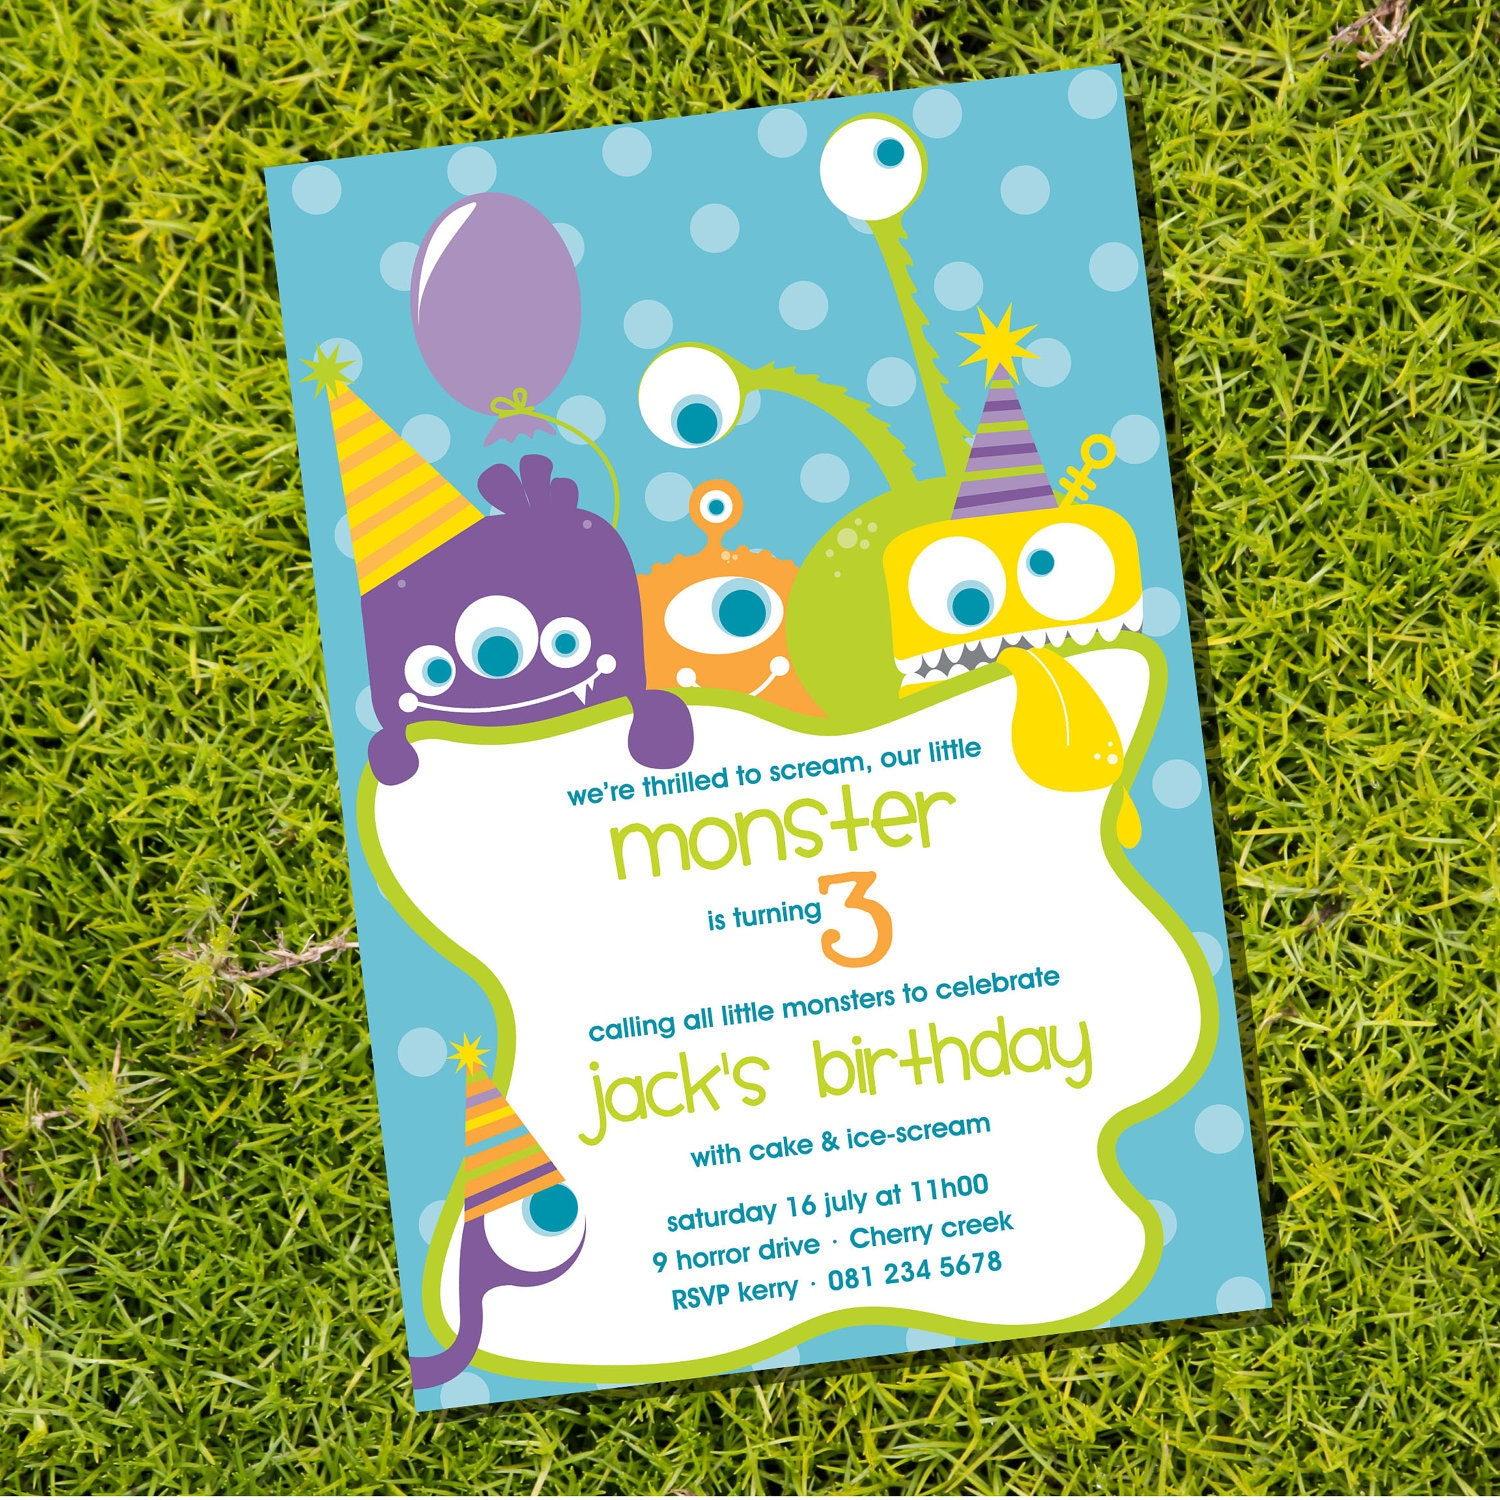 Monster Party Invitation Cute Monsters Invitation – Monster Party Invites